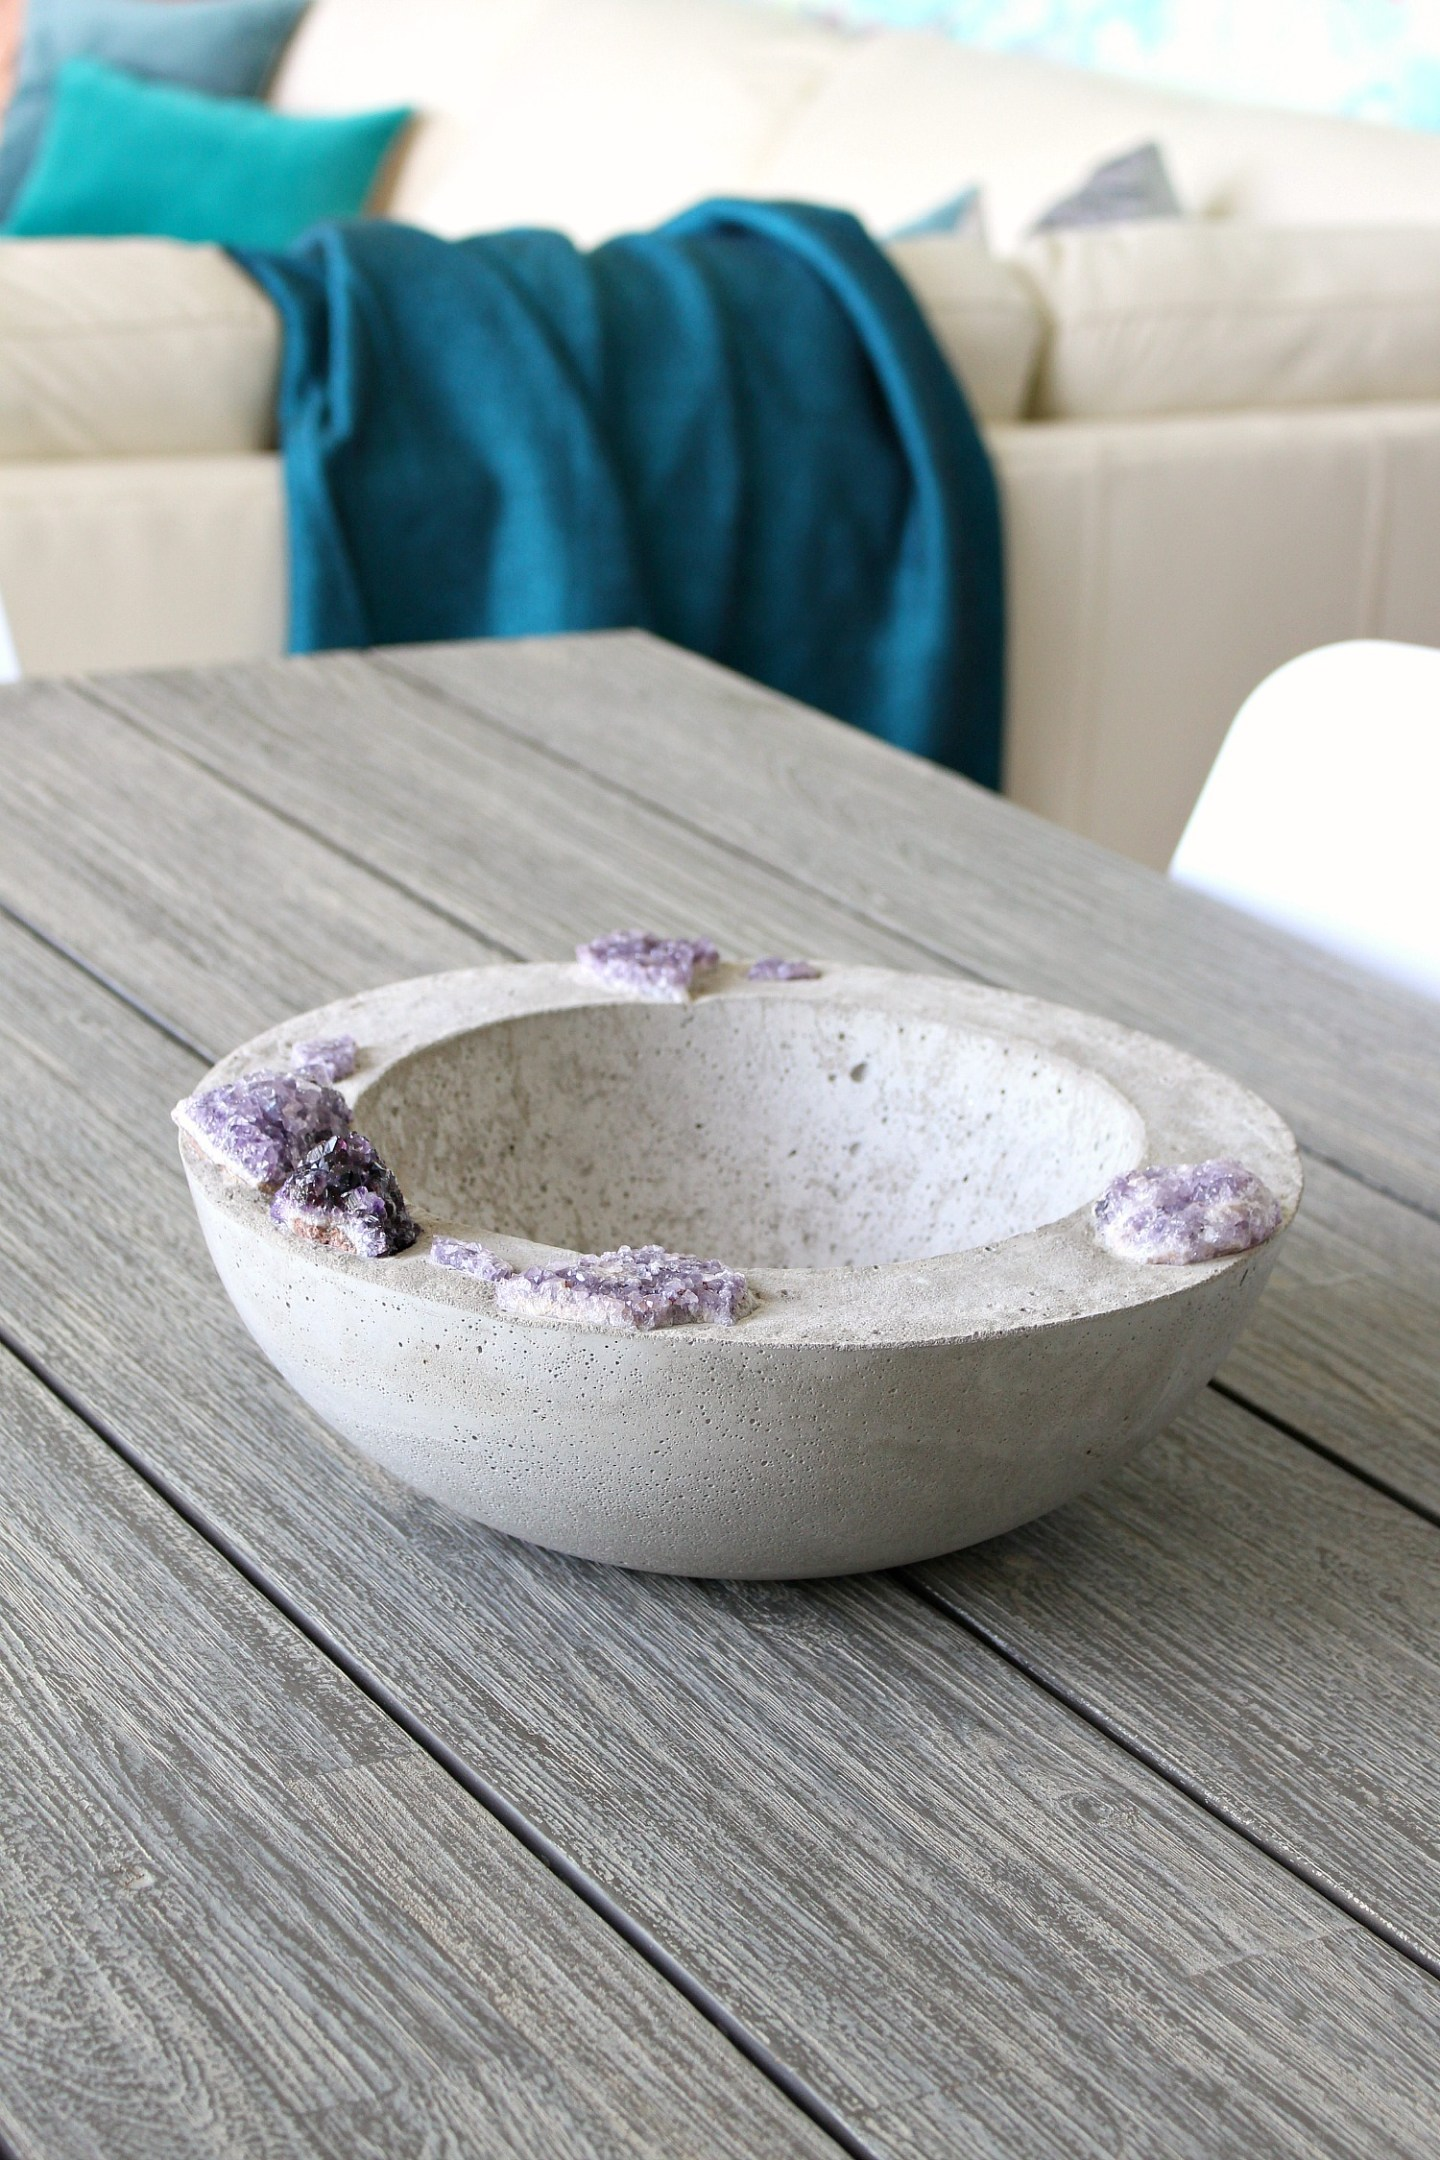 Learn How to Make a Concrete Bowl